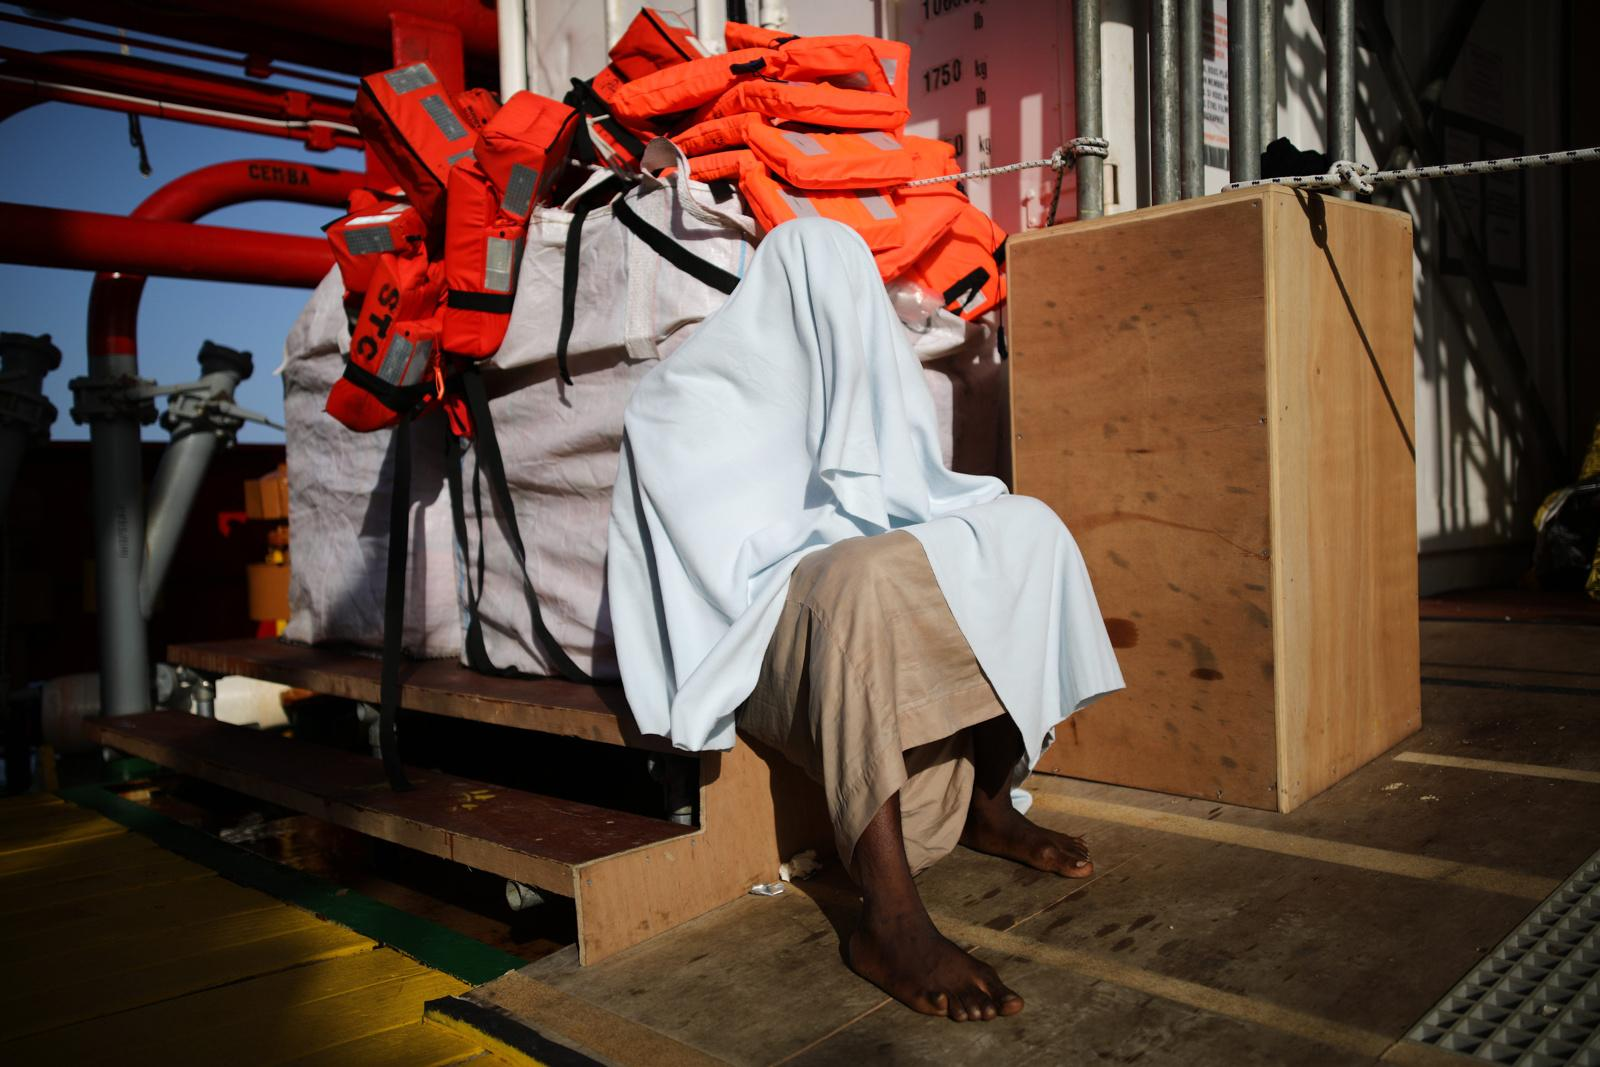 A refugee wrapped in a blanket grieves in front of the morgue on the rescue vessel 'VOS Hestia', after having been rescued from a dinghy on the Mediterranean route from Libya to Italy, June 03, 2017. The sea journey took the lives of four migrants. The Central Mediterranean route is the world's deadliest migration route. Of the estimated 3,080 people that have died or gone missing while trying to reach Europe by sea via the three Mediterranean routes until end of November 2017, over 94% of deaths have occurred from North Africa to Italy, according to UNHCR. Over 117,000 refugees and migrants arrived in Italy by sea in 2017, about 32% less compared to 2016.